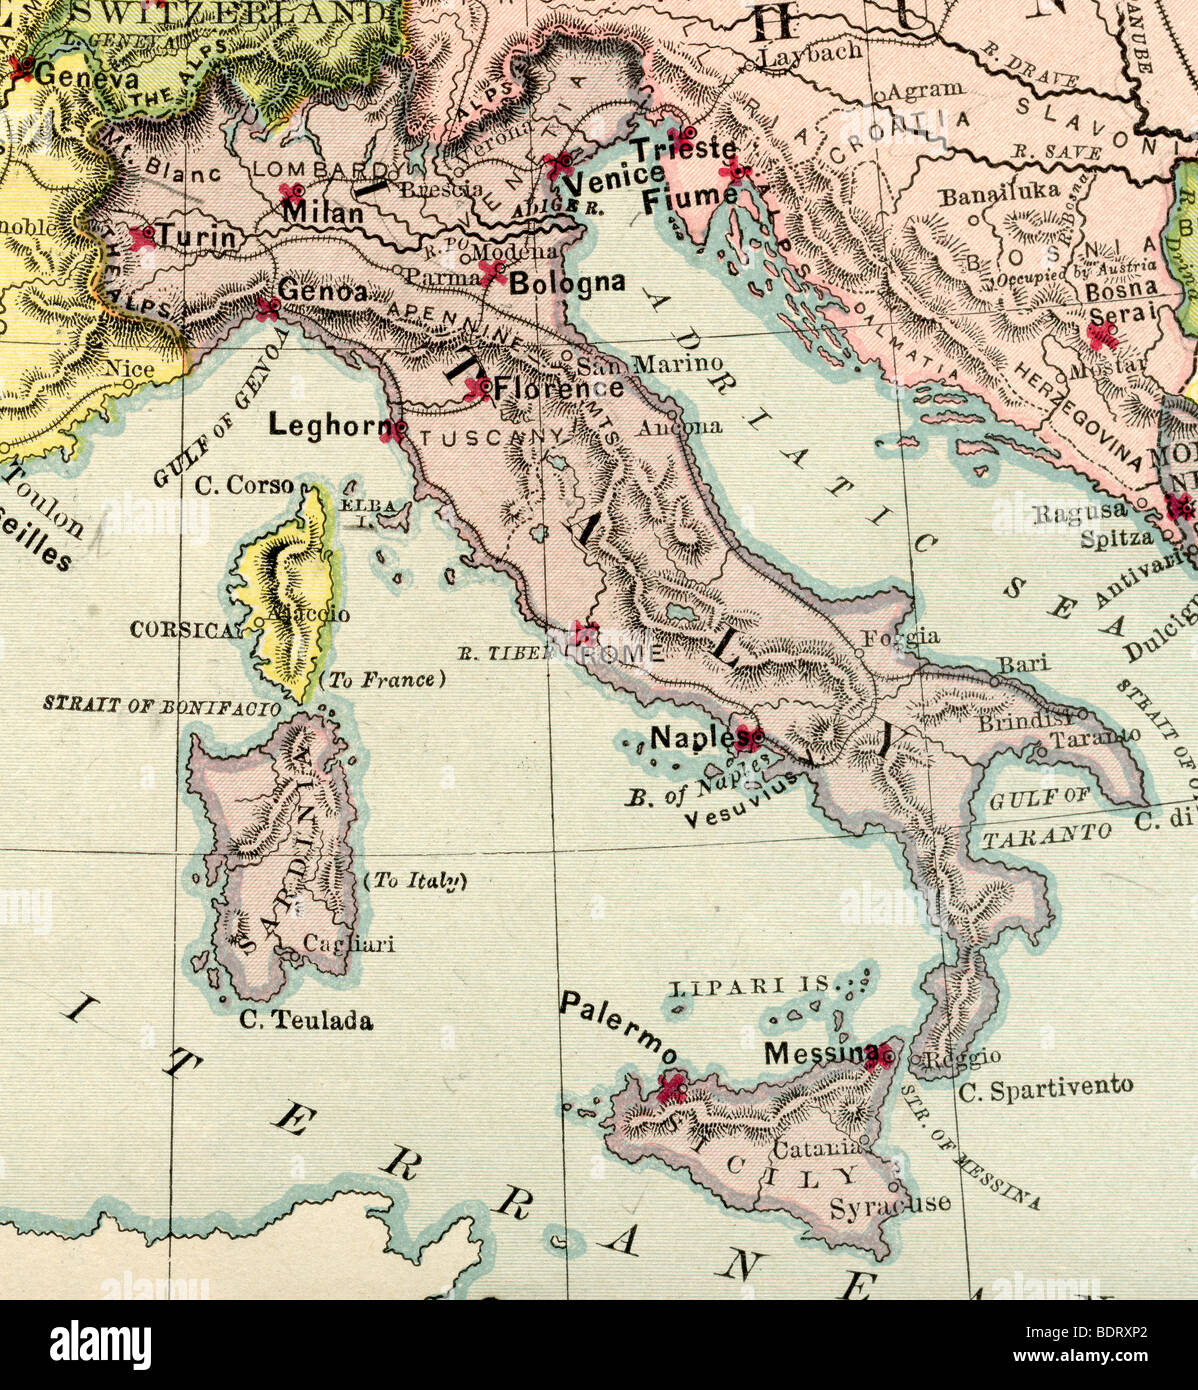 Images Of Map Of Italy.Italy Map Stock Photos Italy Map Stock Images Alamy